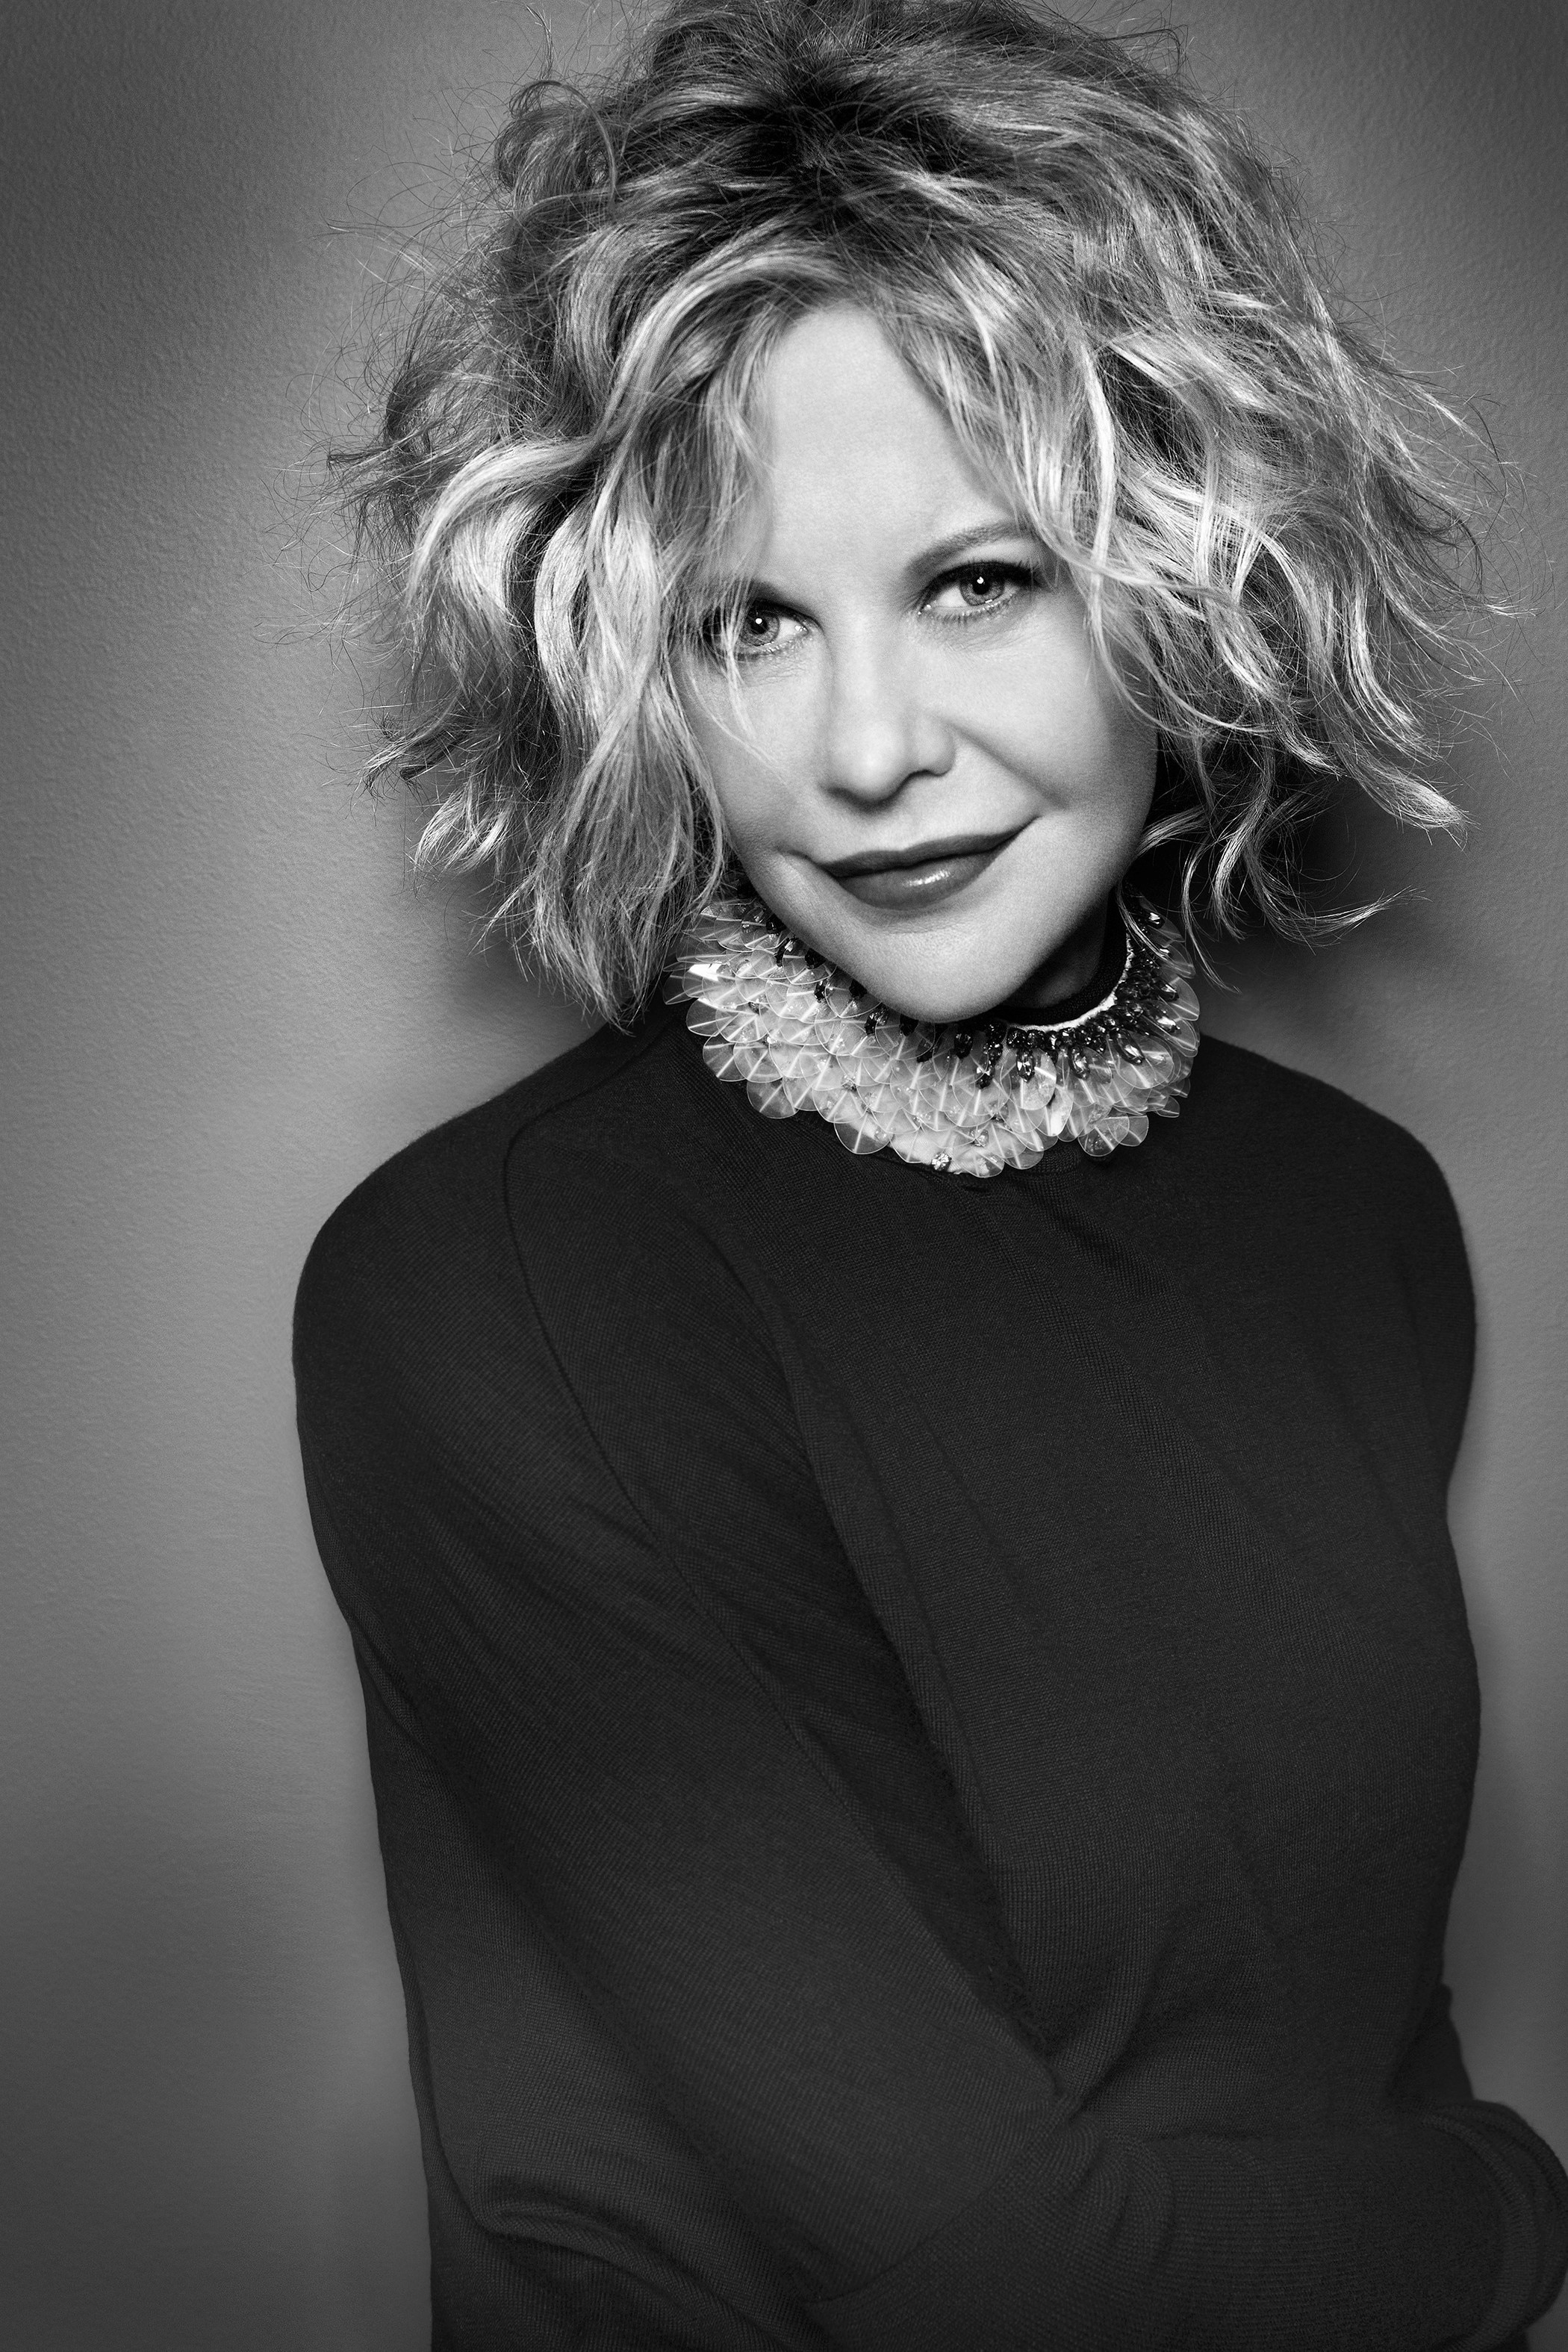 Meg Ryan American Actress, Producer